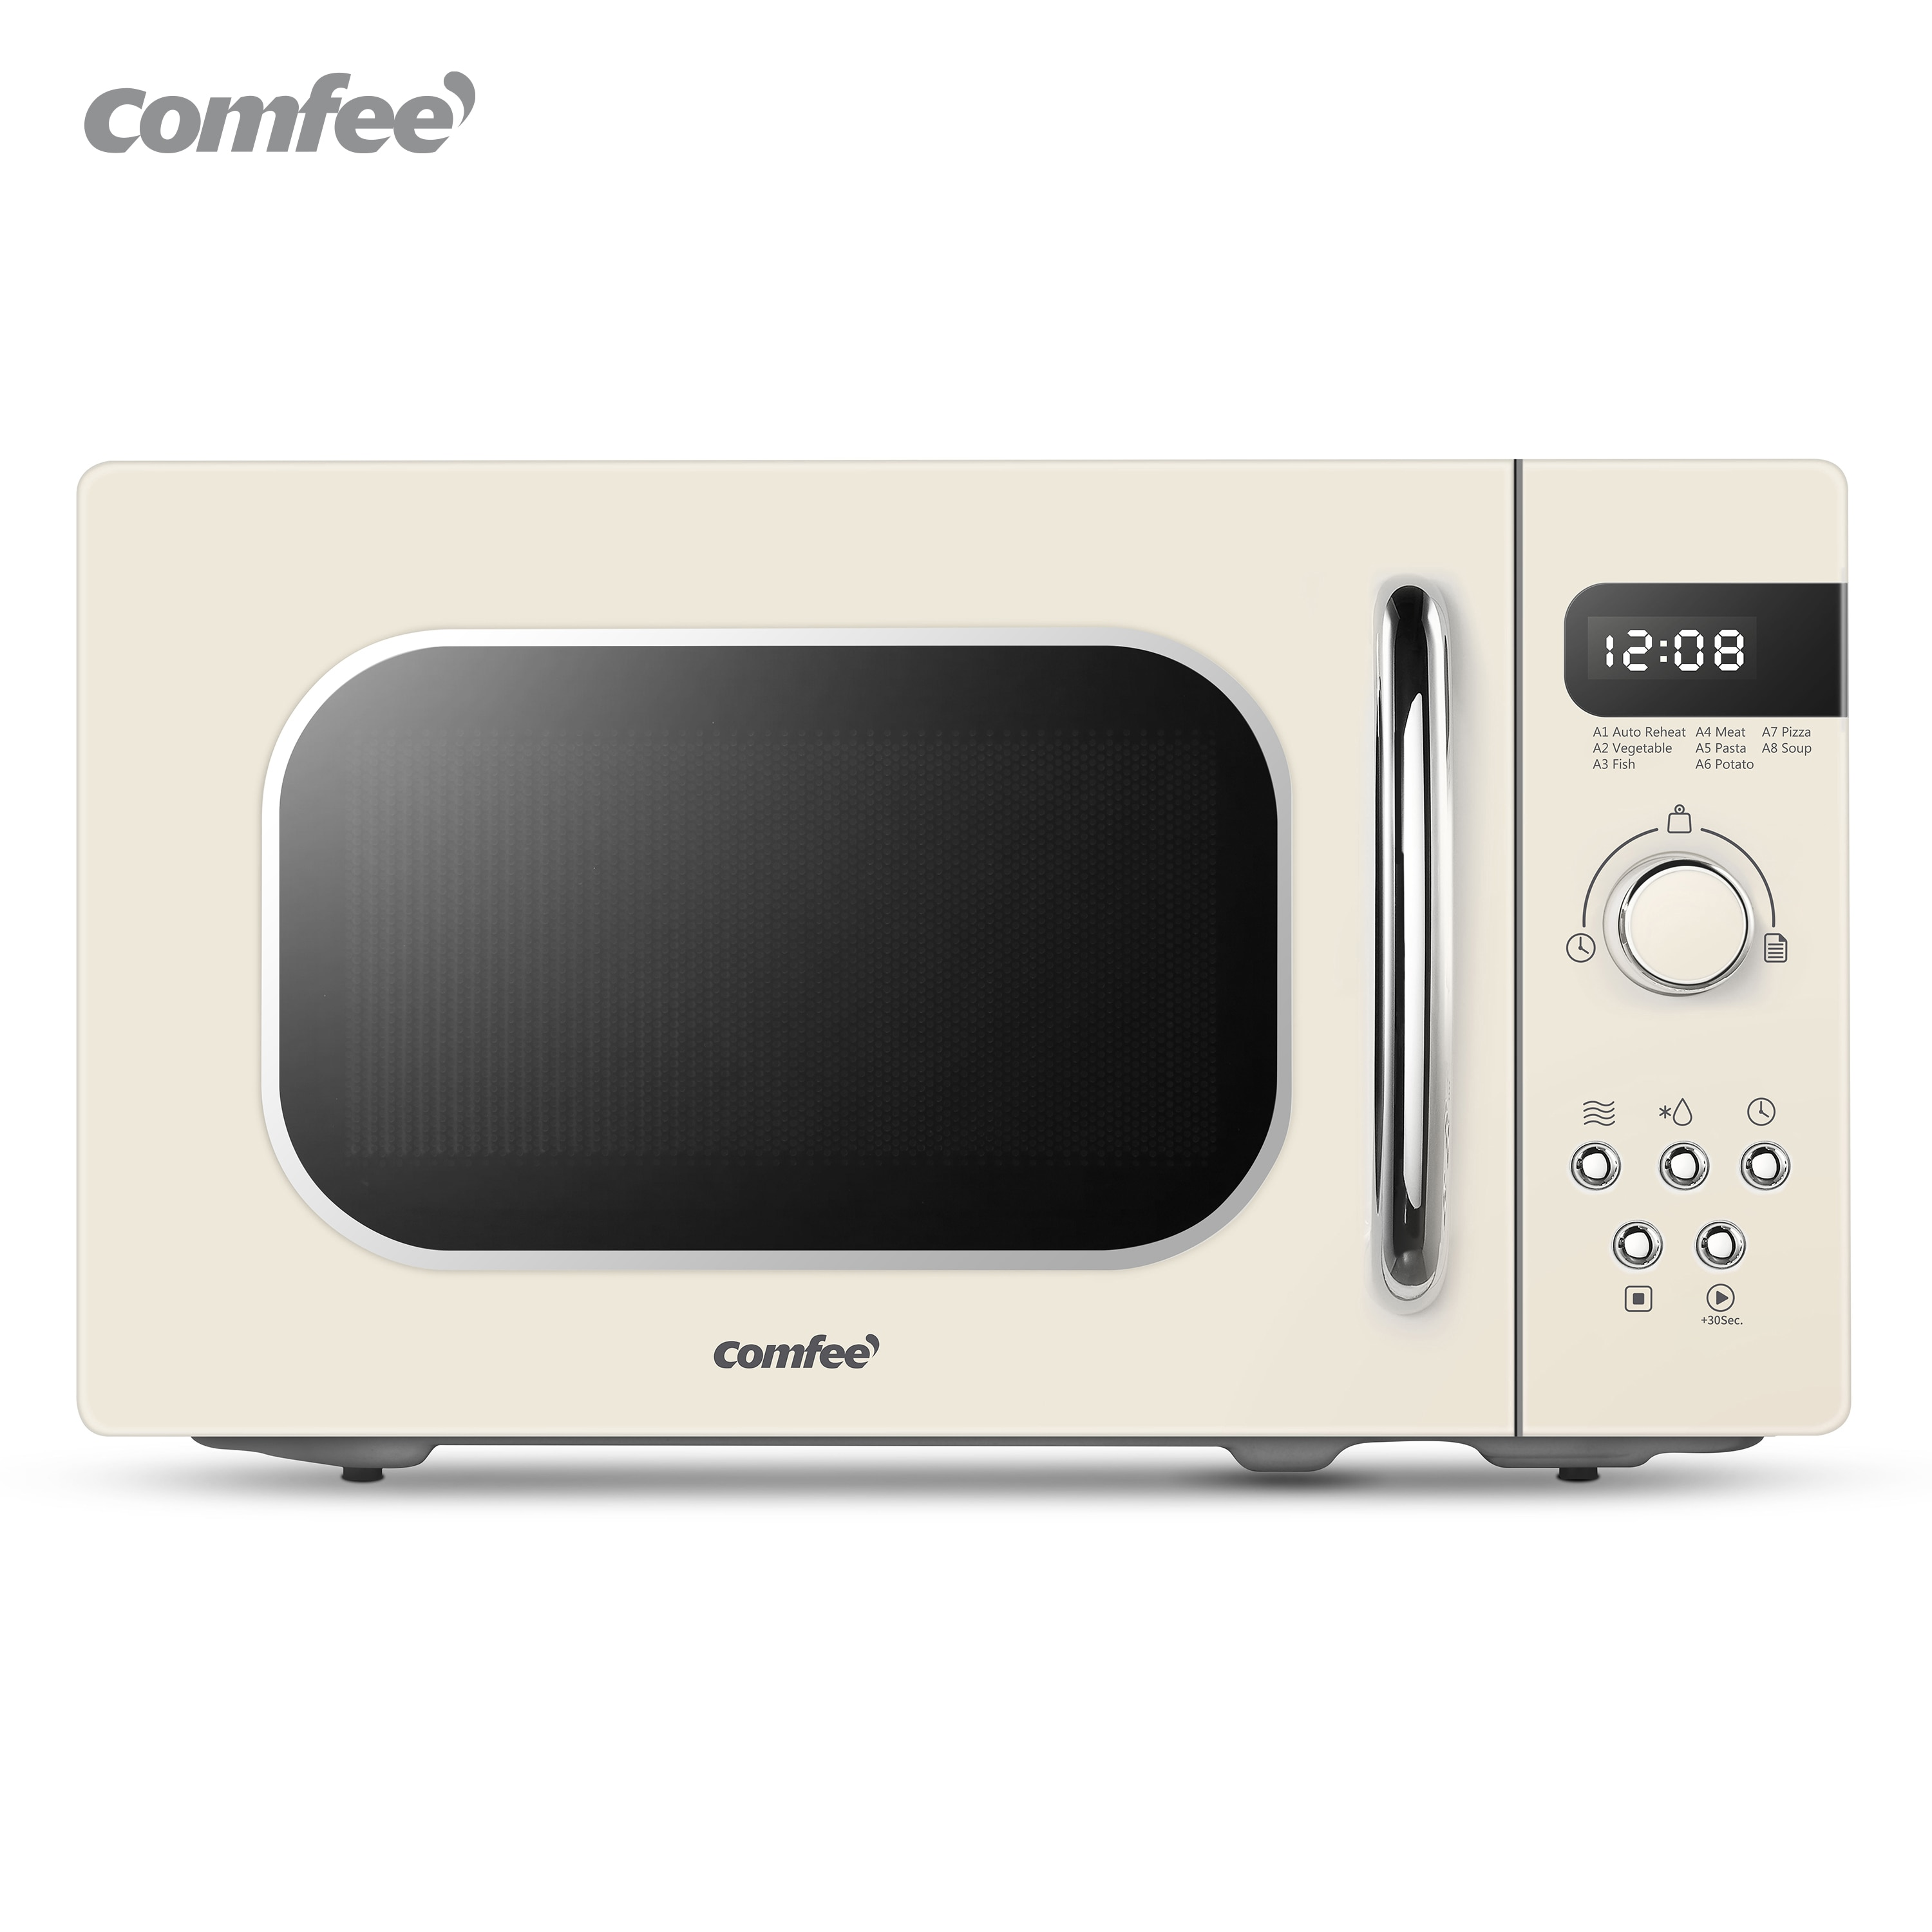 rotary microwave oven fully automatic 6 speed adjustable unified temperature control 20l low power consumption lightweight new COMFEE White Retro Style 800w 20L Microwave Oven with 8 Auto Menus 5 Cooking Power Levels and Express Cook Button Mint Green